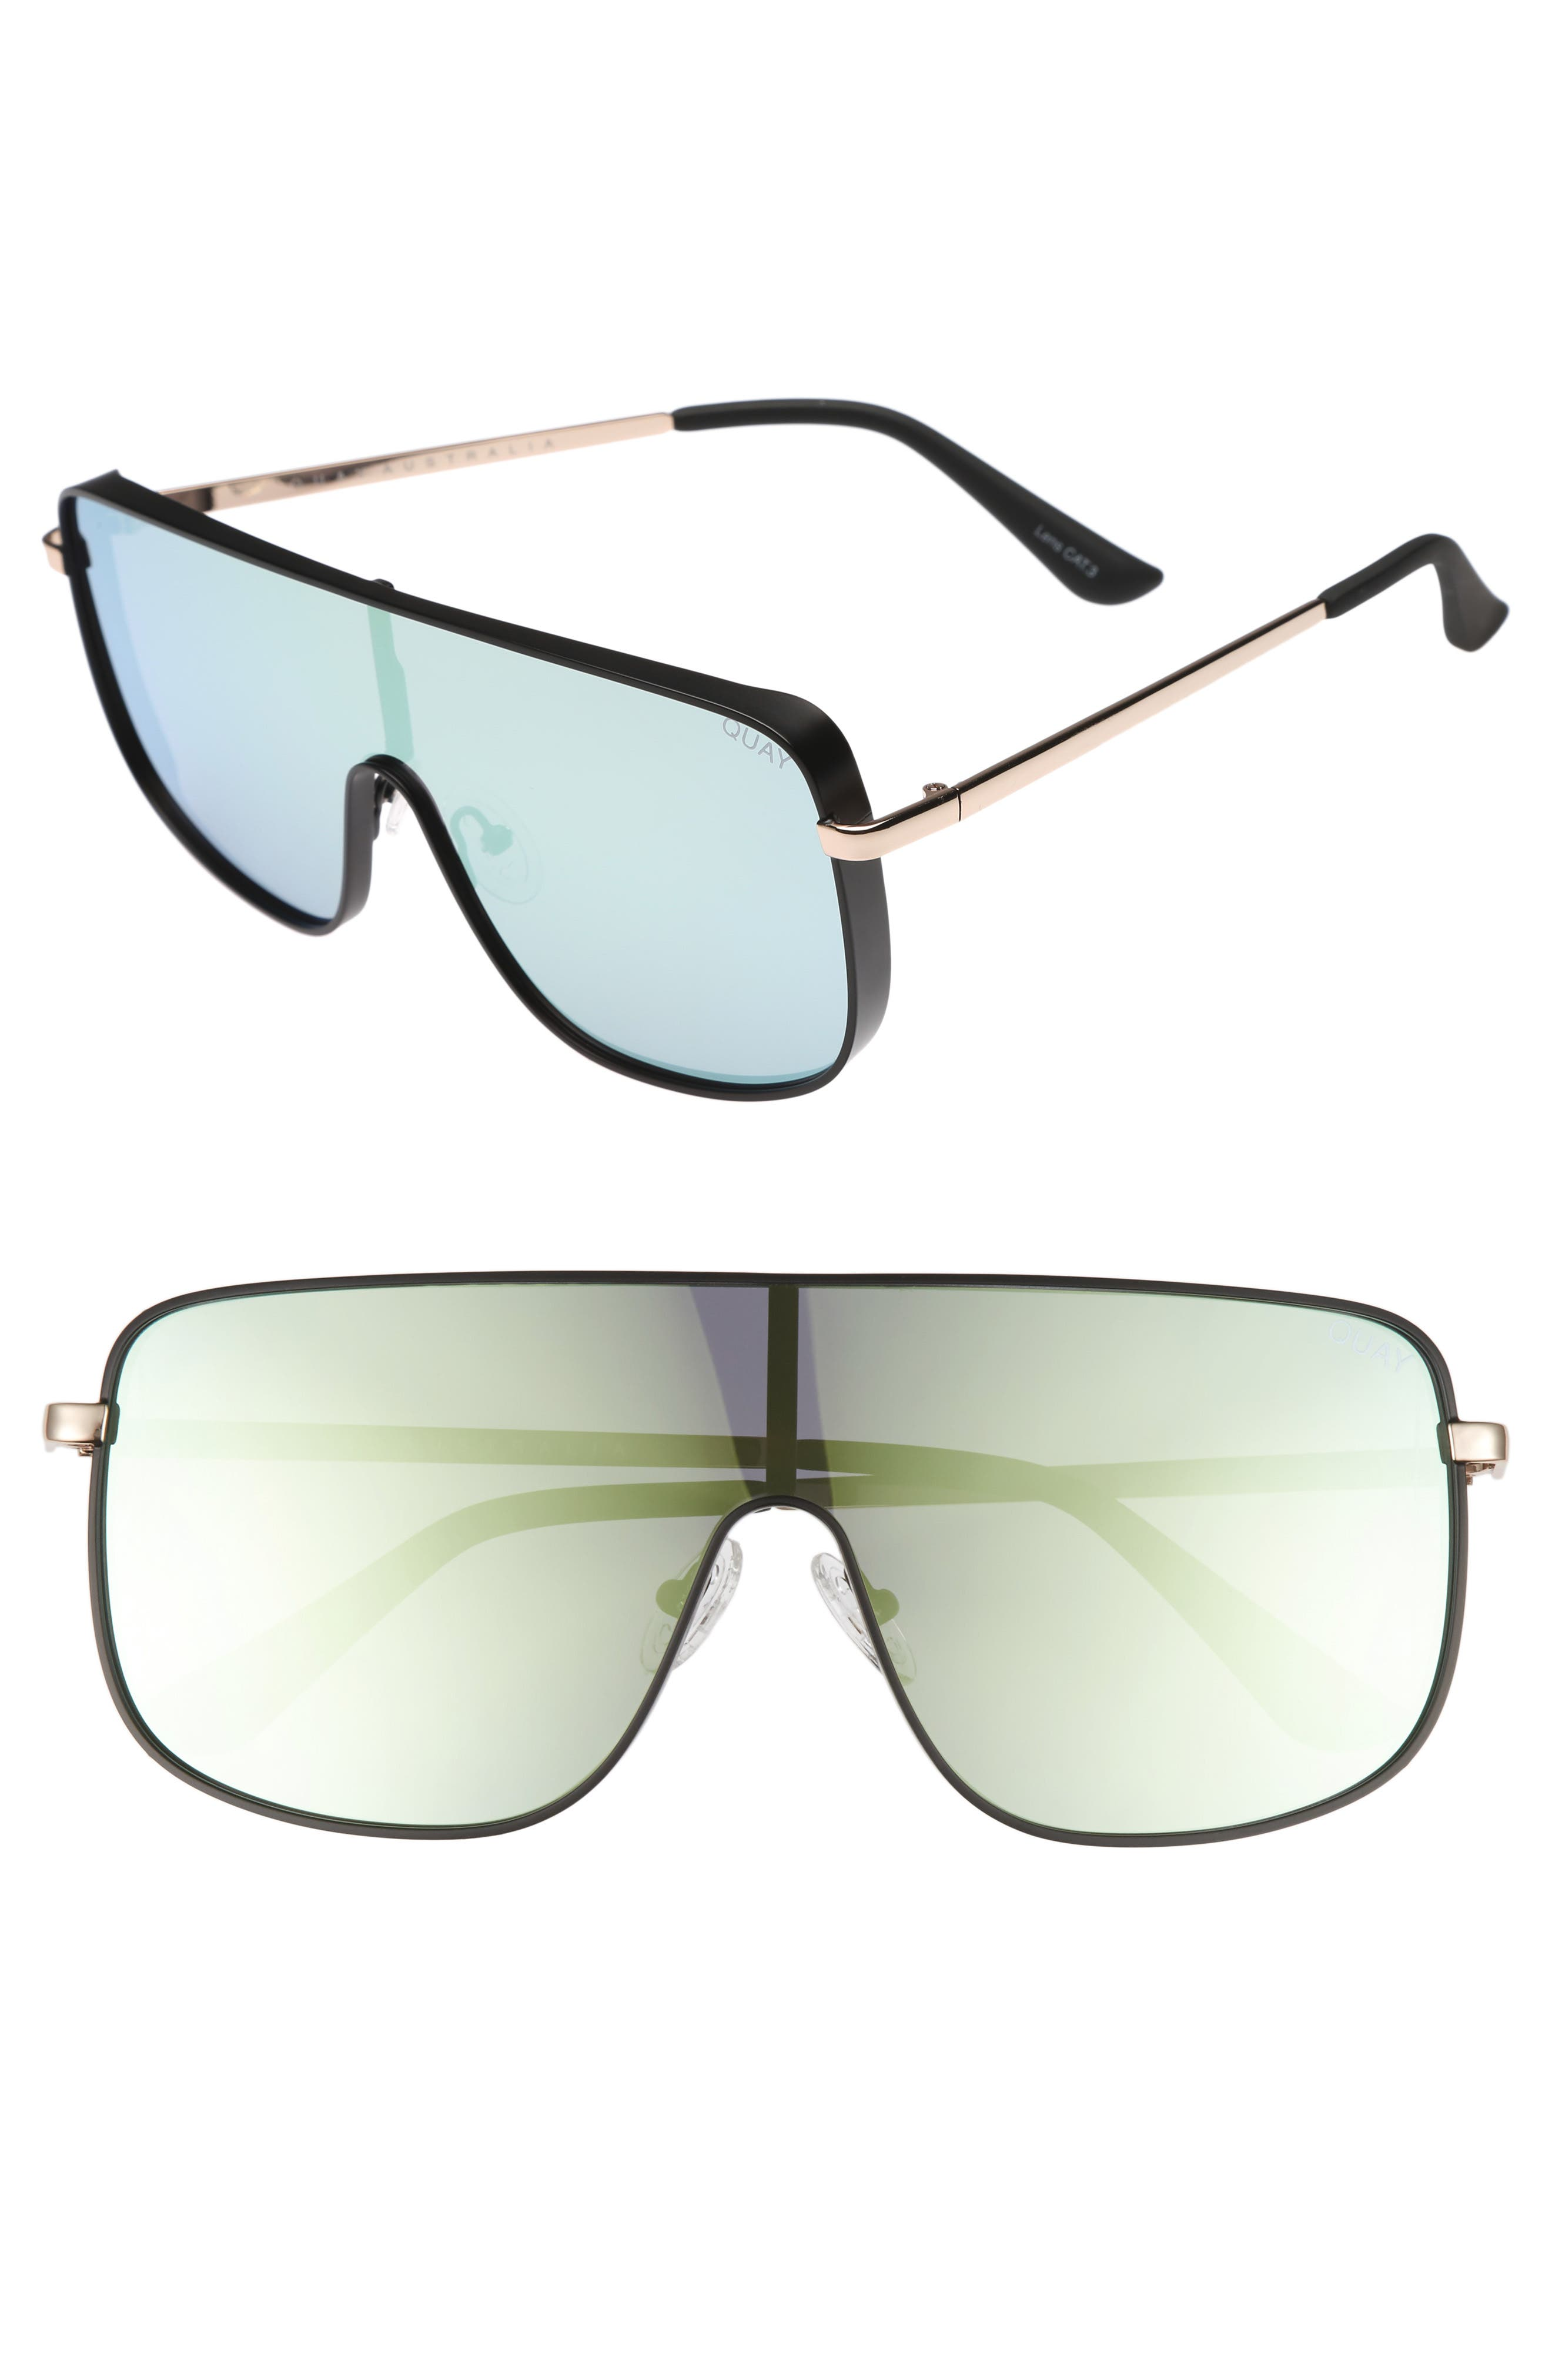 Unbothered 68mm Shield Sunglasses,                             Main thumbnail 1, color,                             001